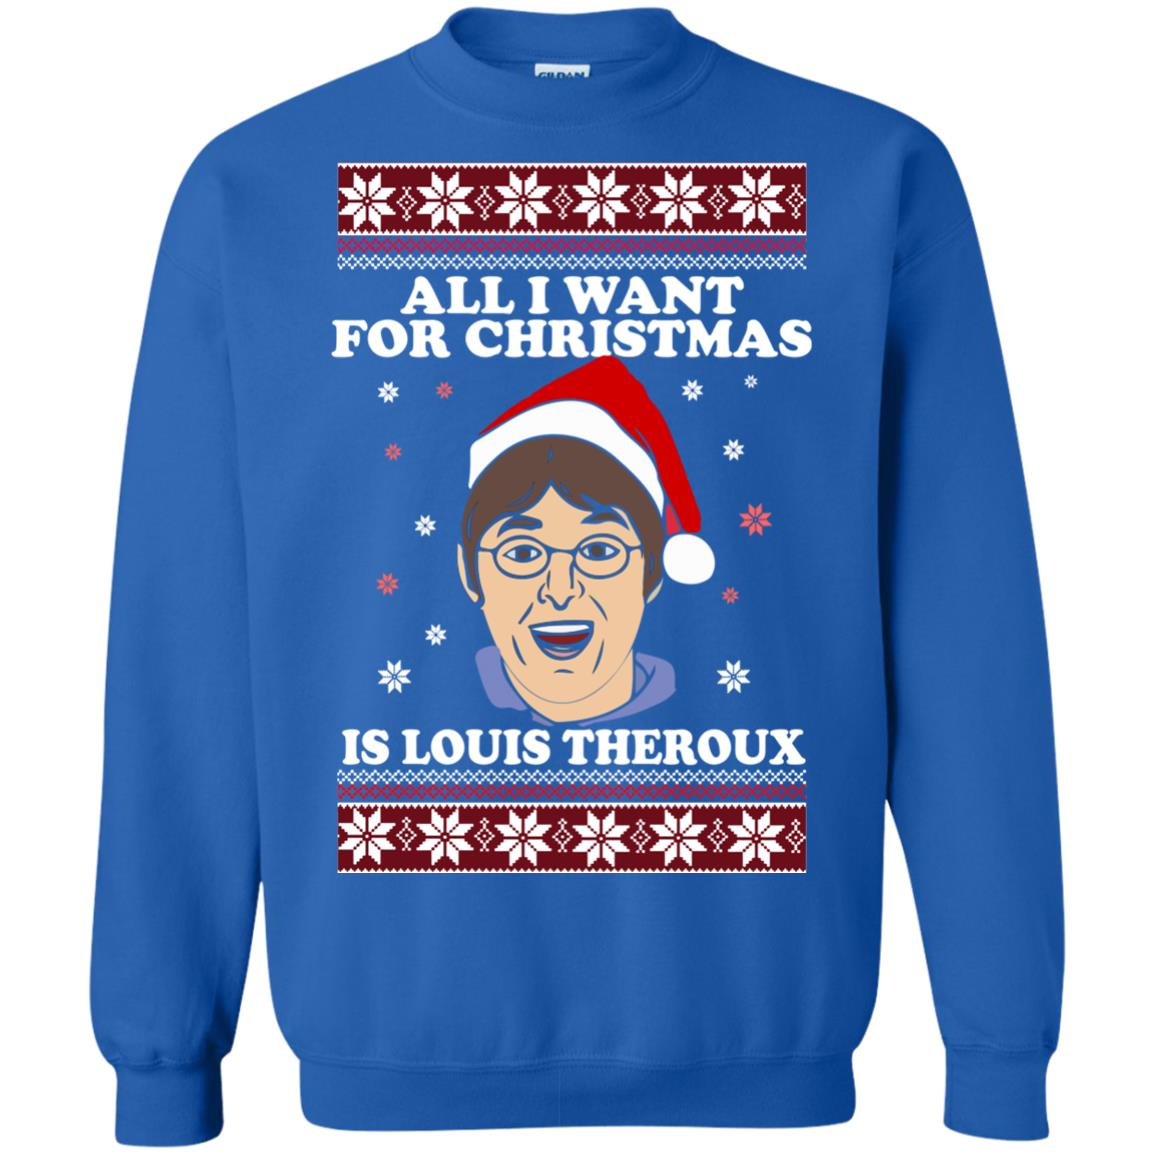 e45478c5e48e All I want for Christmas IS Louis Theroux ugly Sweater shirt - image 2953  510x510